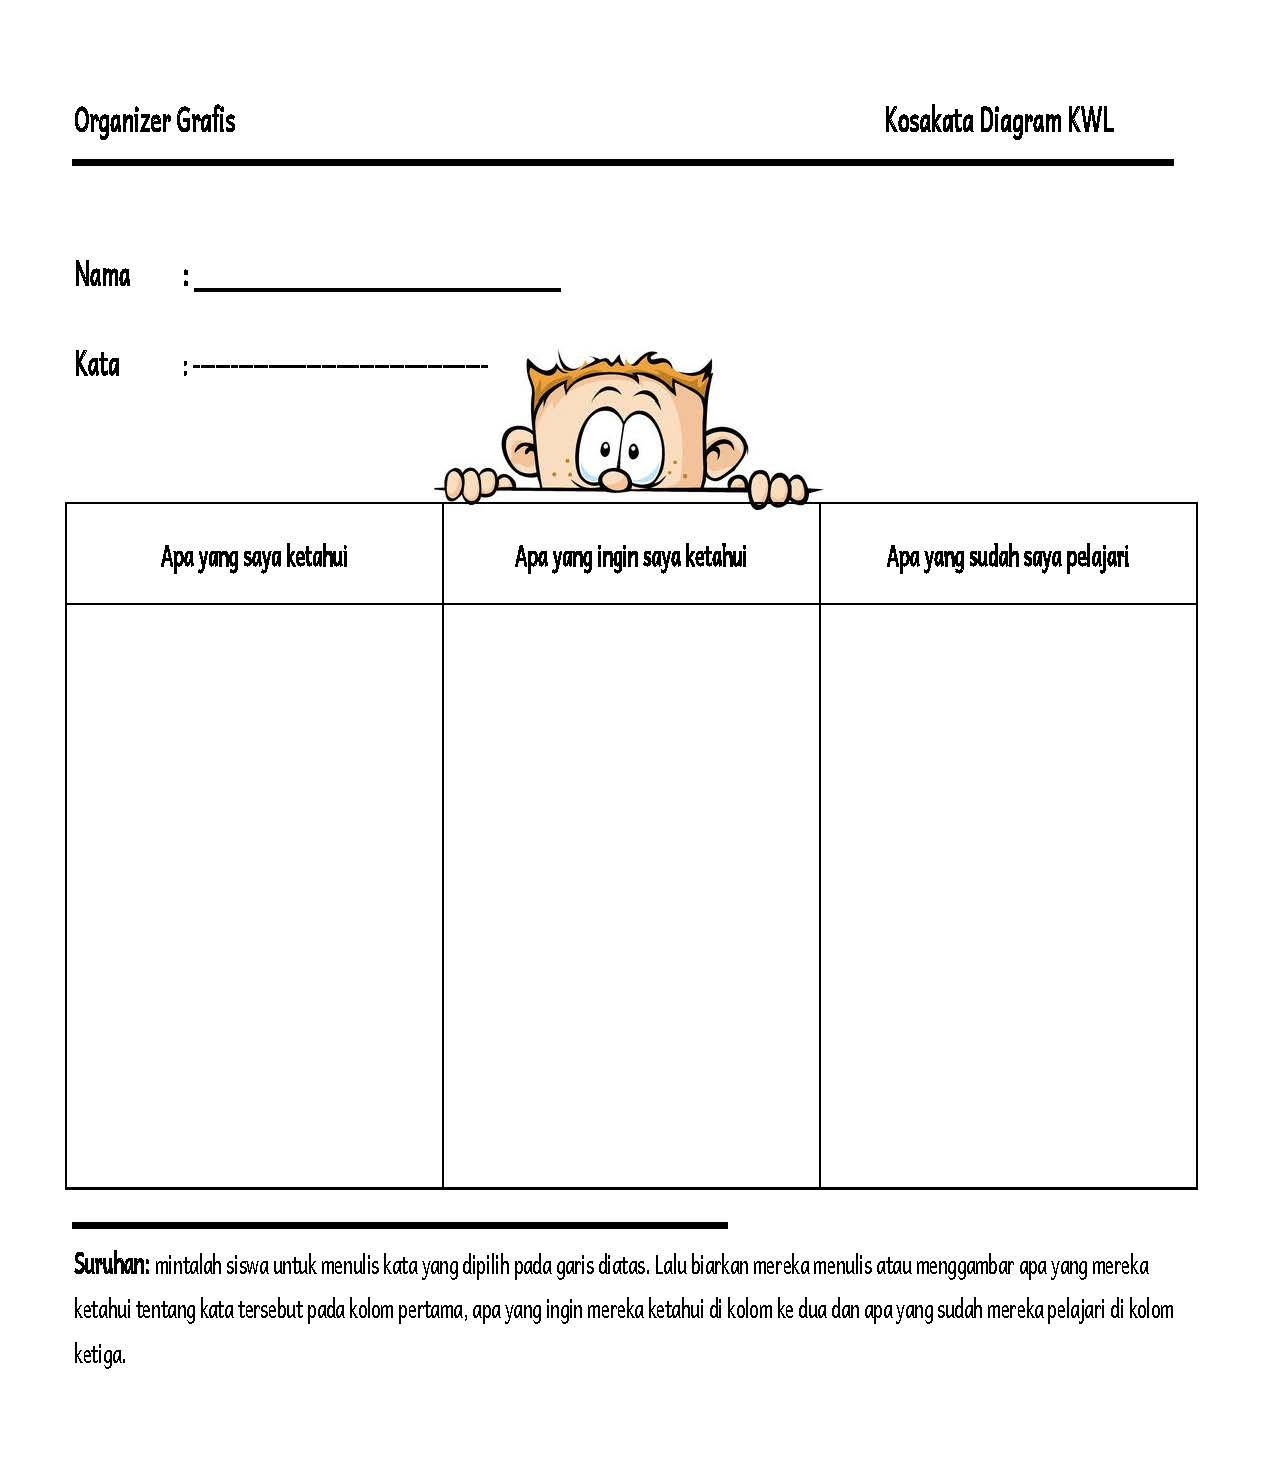 Worksheets Worksheet-bahasa-indonesia pin by emilia rosita on bahasa indonesia pinterest worksheets mini books teaching resources templates language role models template speech and language